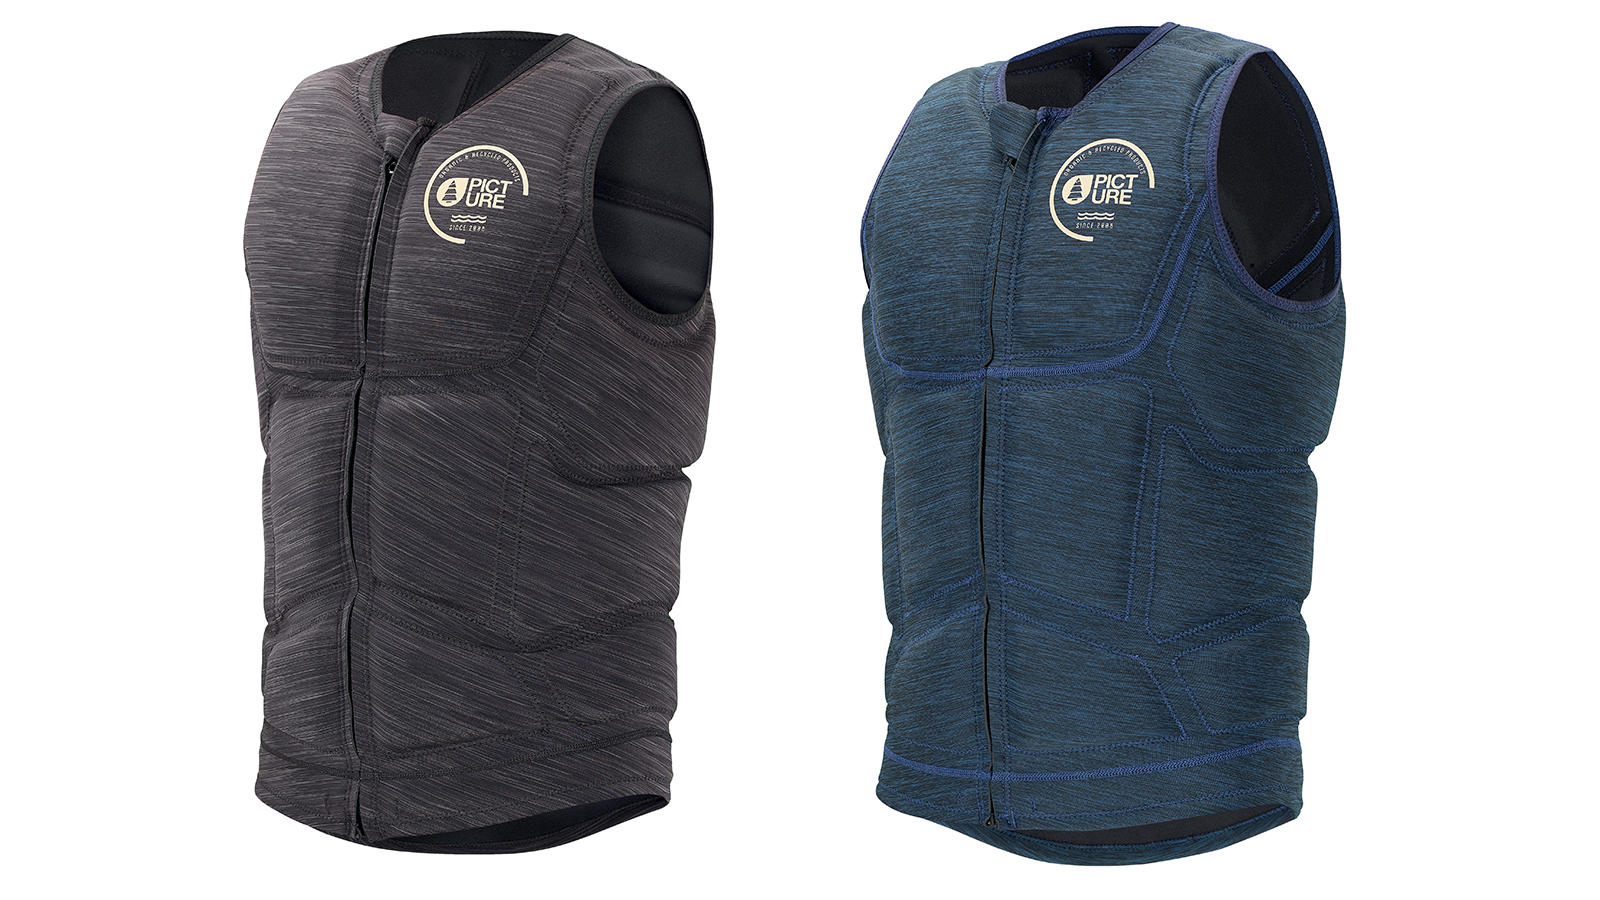 Picture-Organic-Clothing-Dony-Impact-Vest